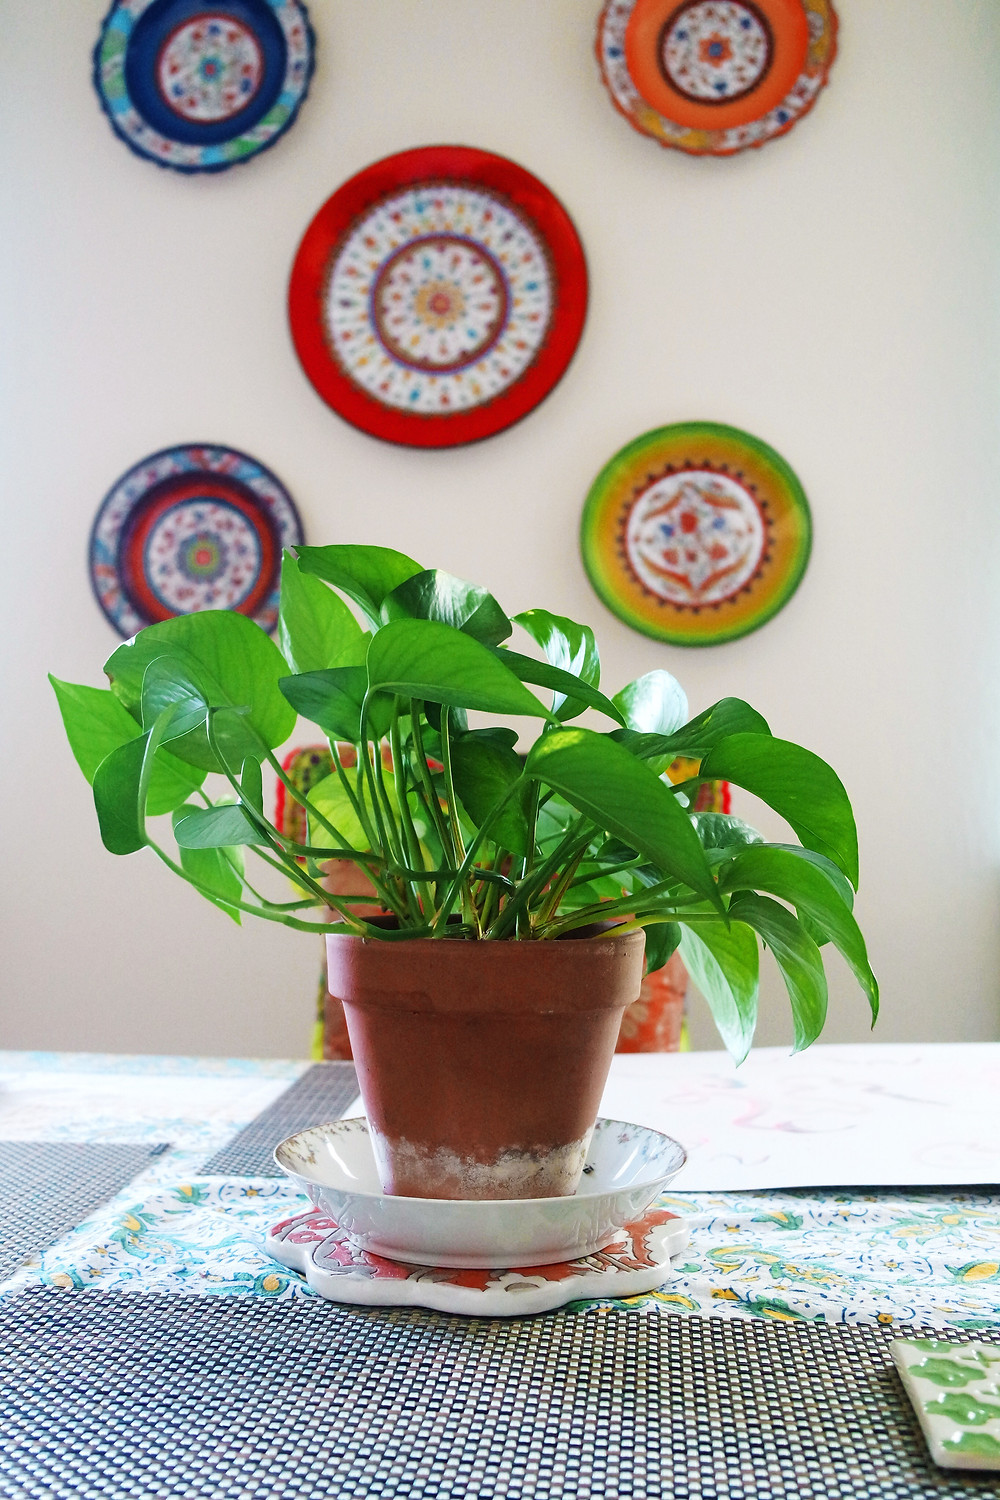 Pothos Plant in terracotta pot on table with 5 colorful turkish plates on the wall behind it.